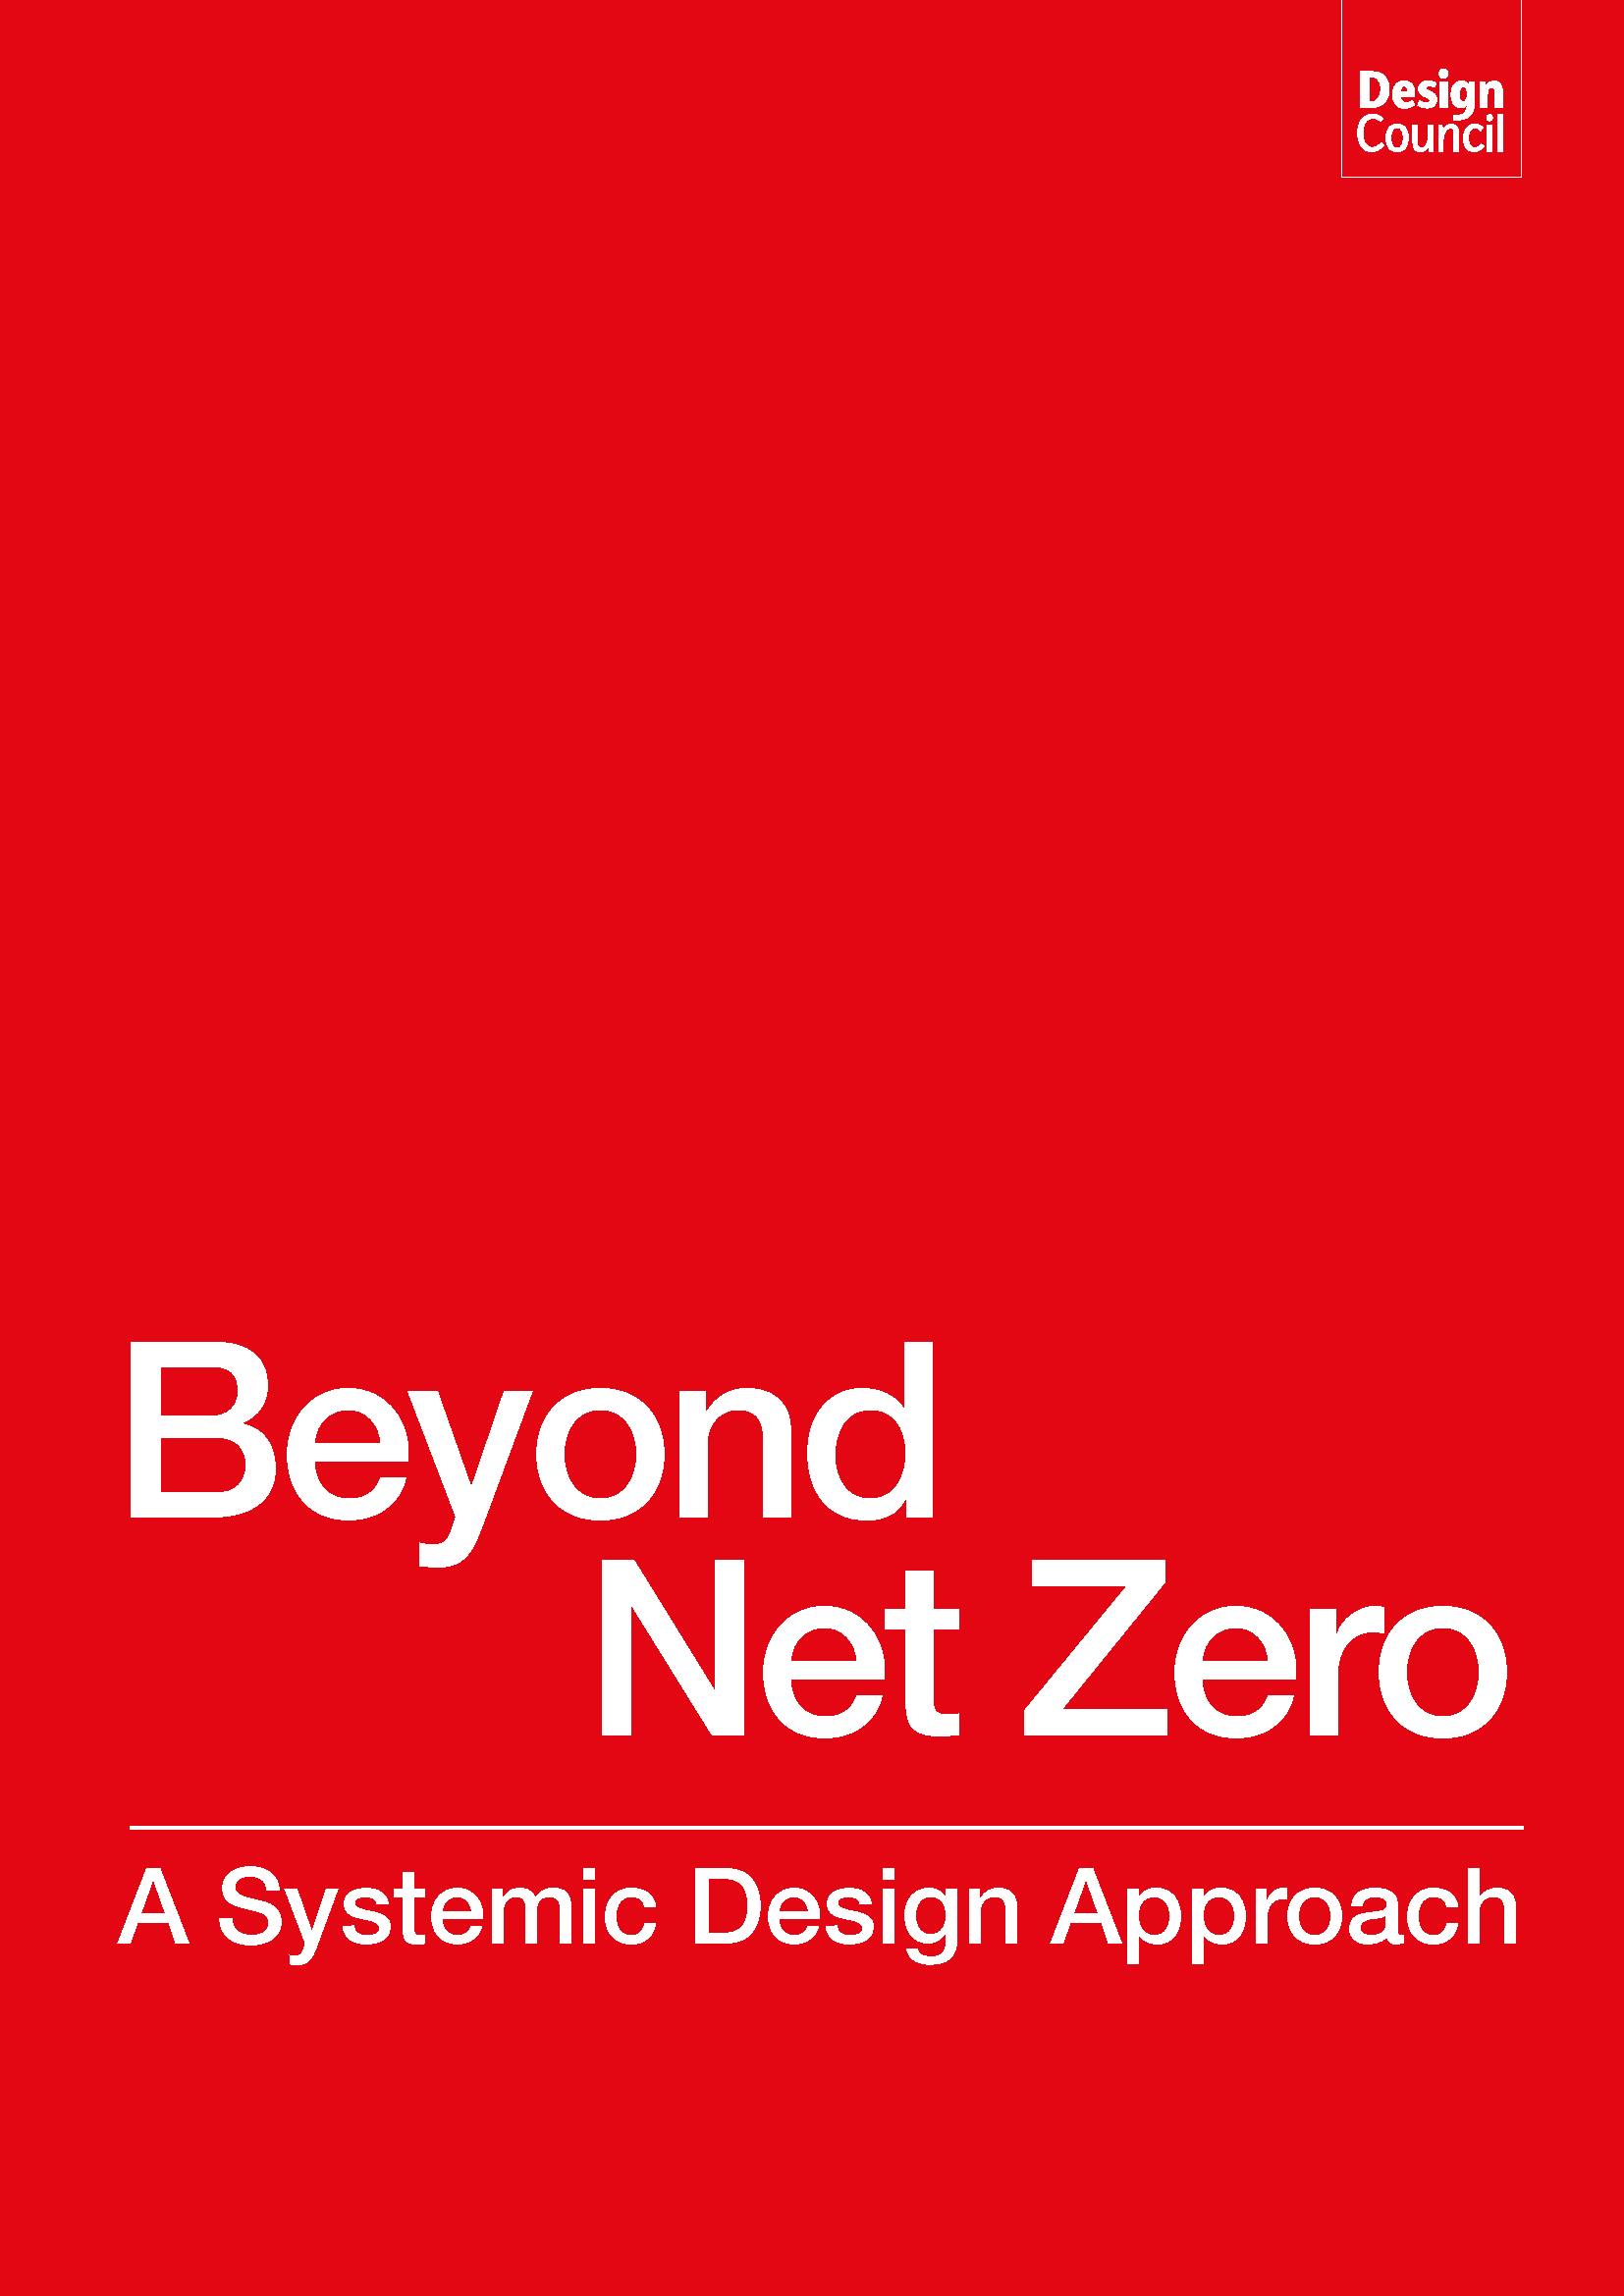 Download the Beyond Net Zero Guide